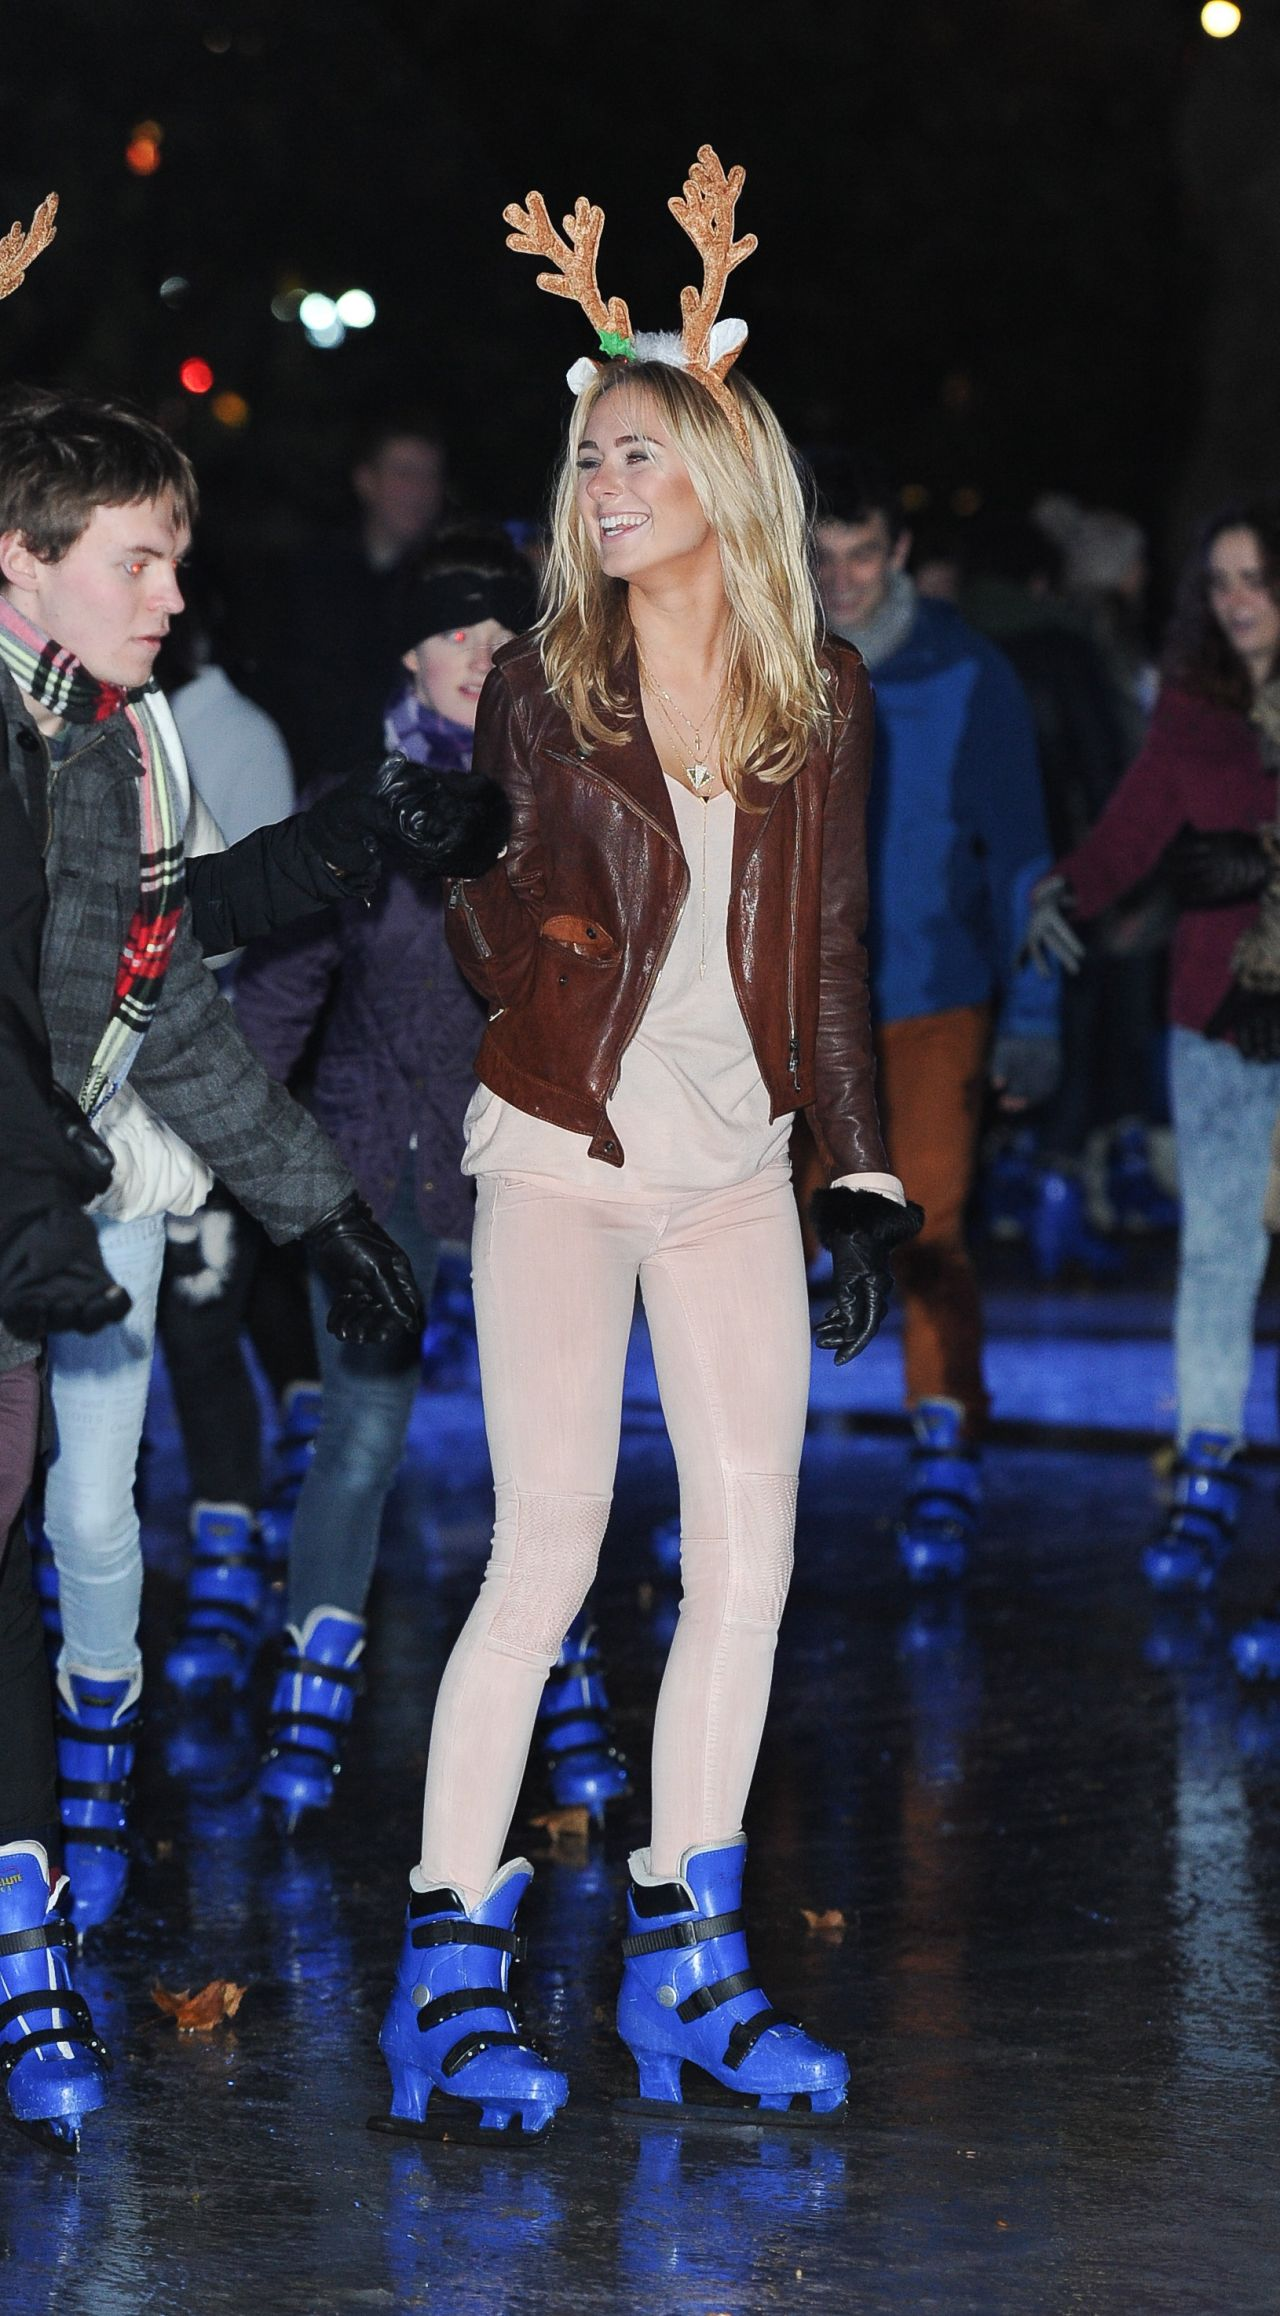 Kimberley Garner Leggy - Ice skating at the Natural History Museum Ice Rink in London - December 2014